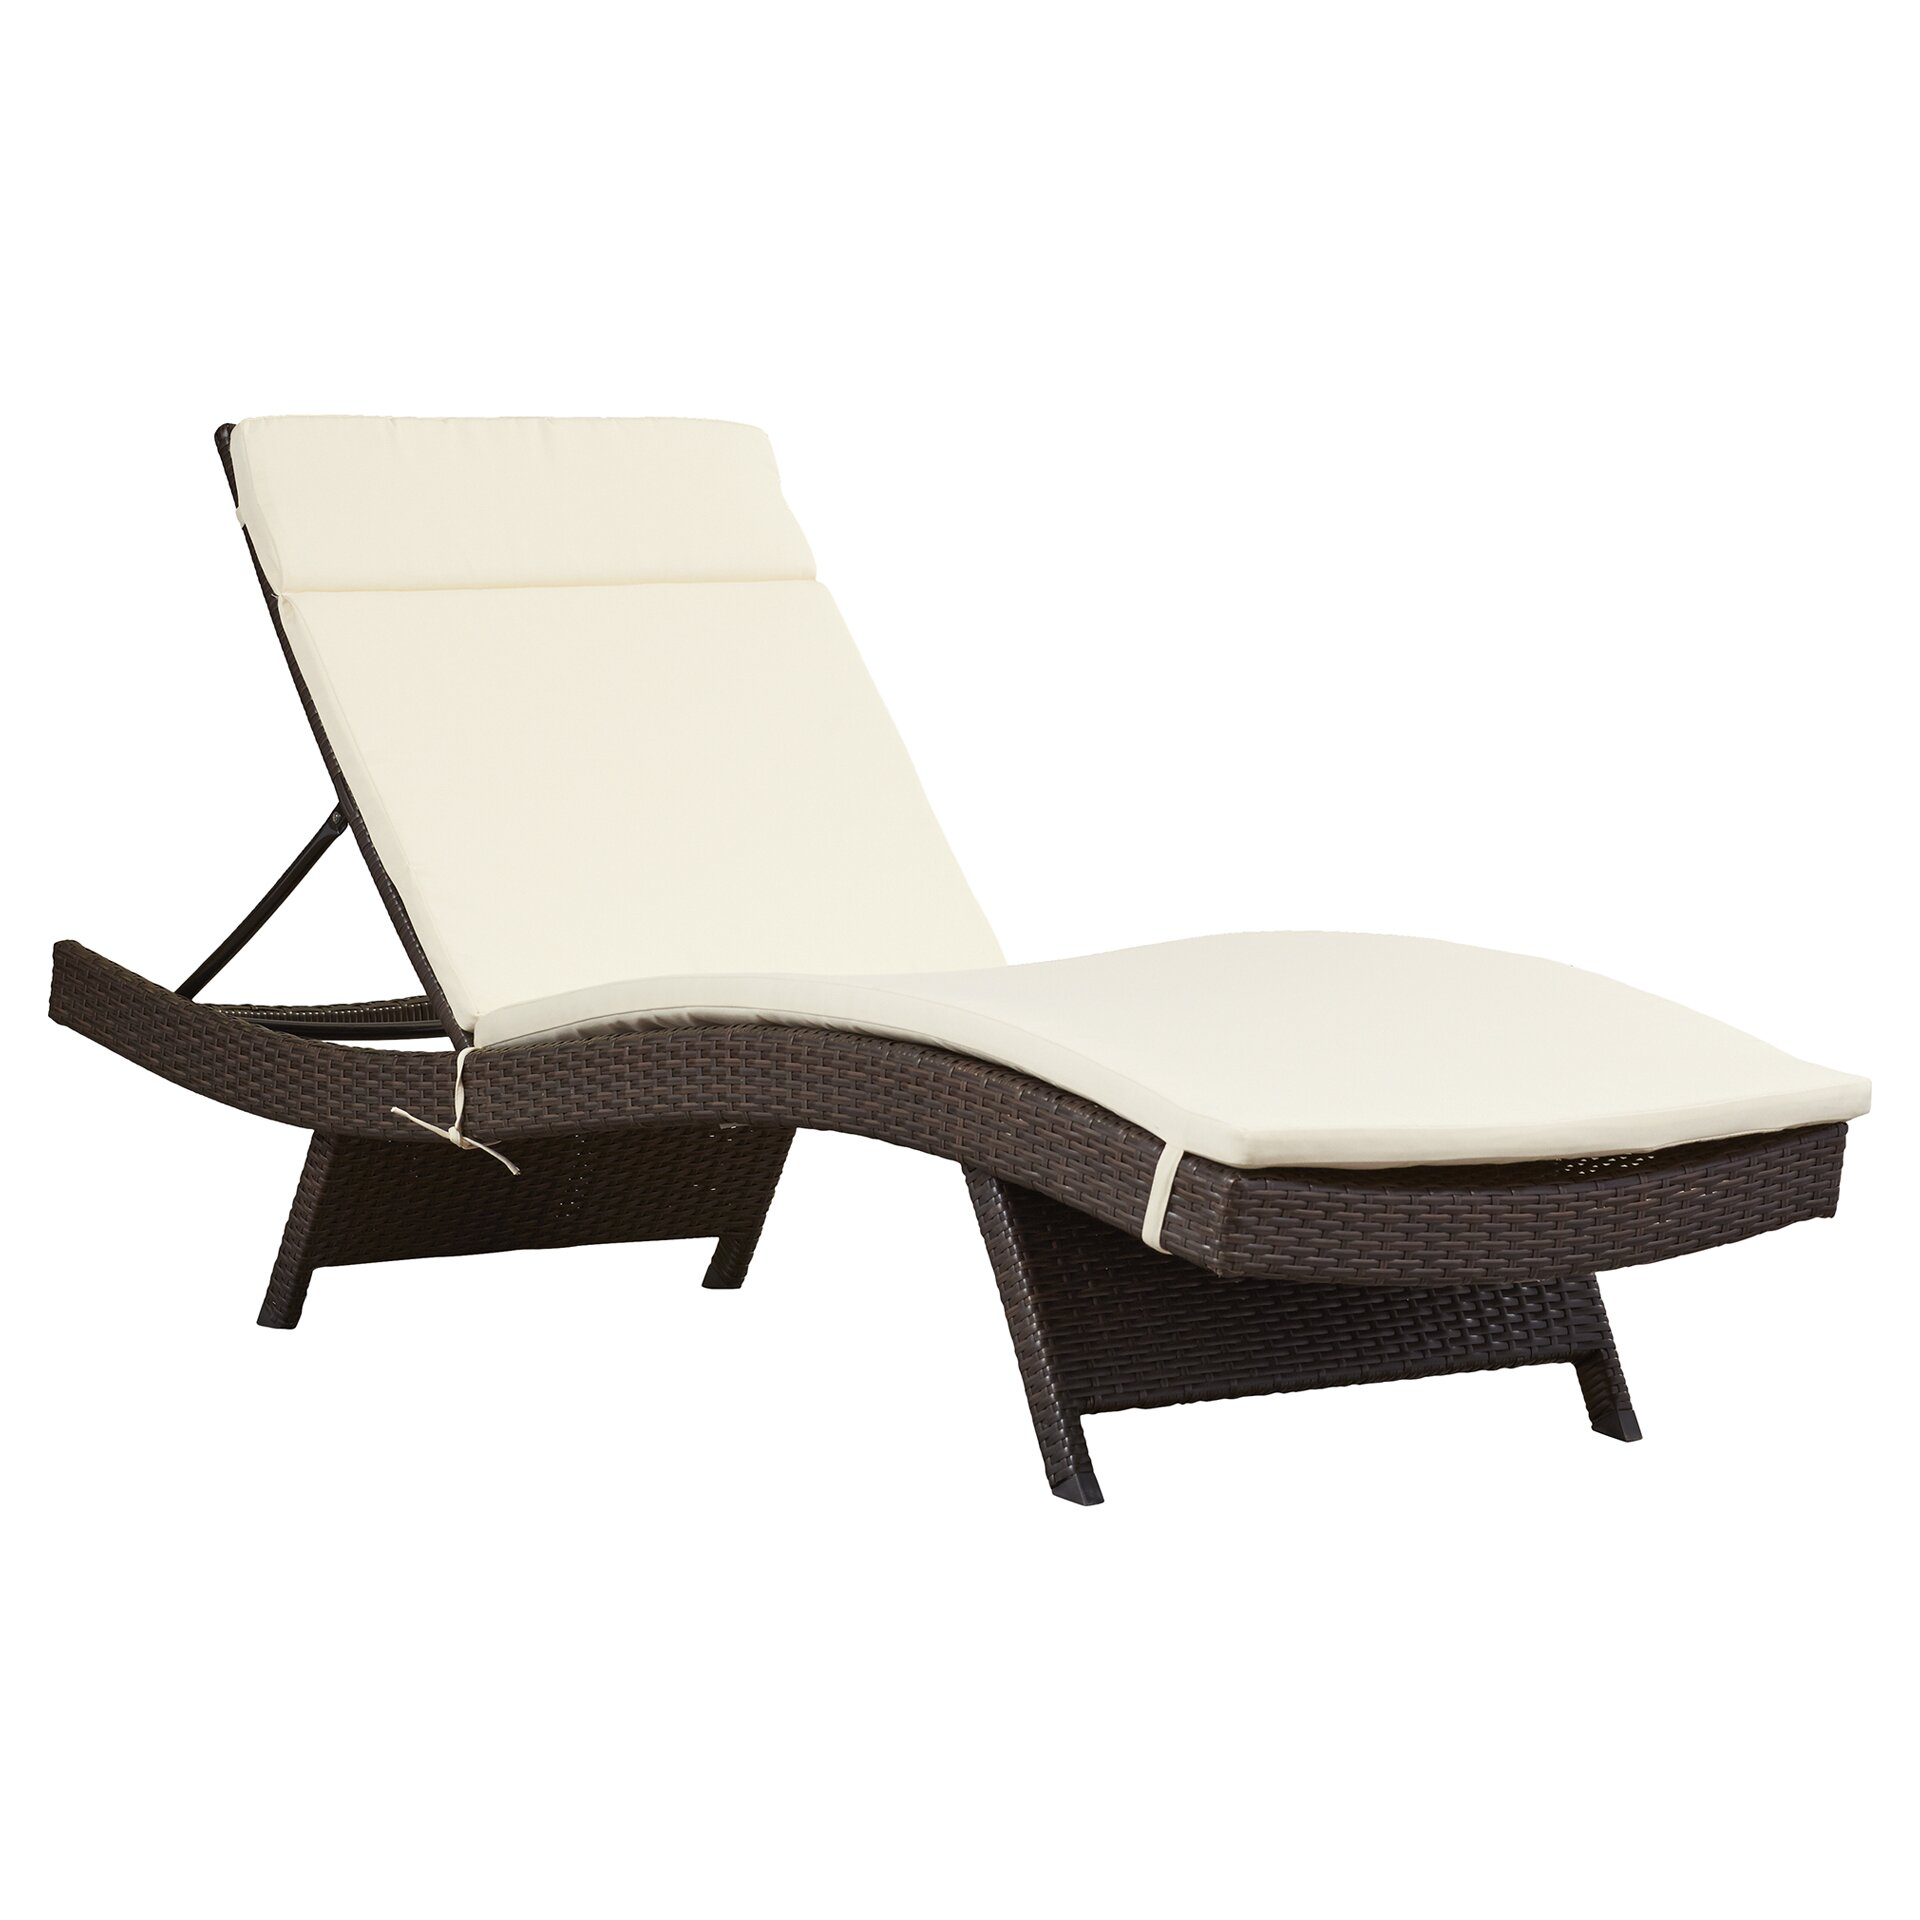 Brayden studio garry wicker adjustable chaise lounge with for Chaise cushions on sale